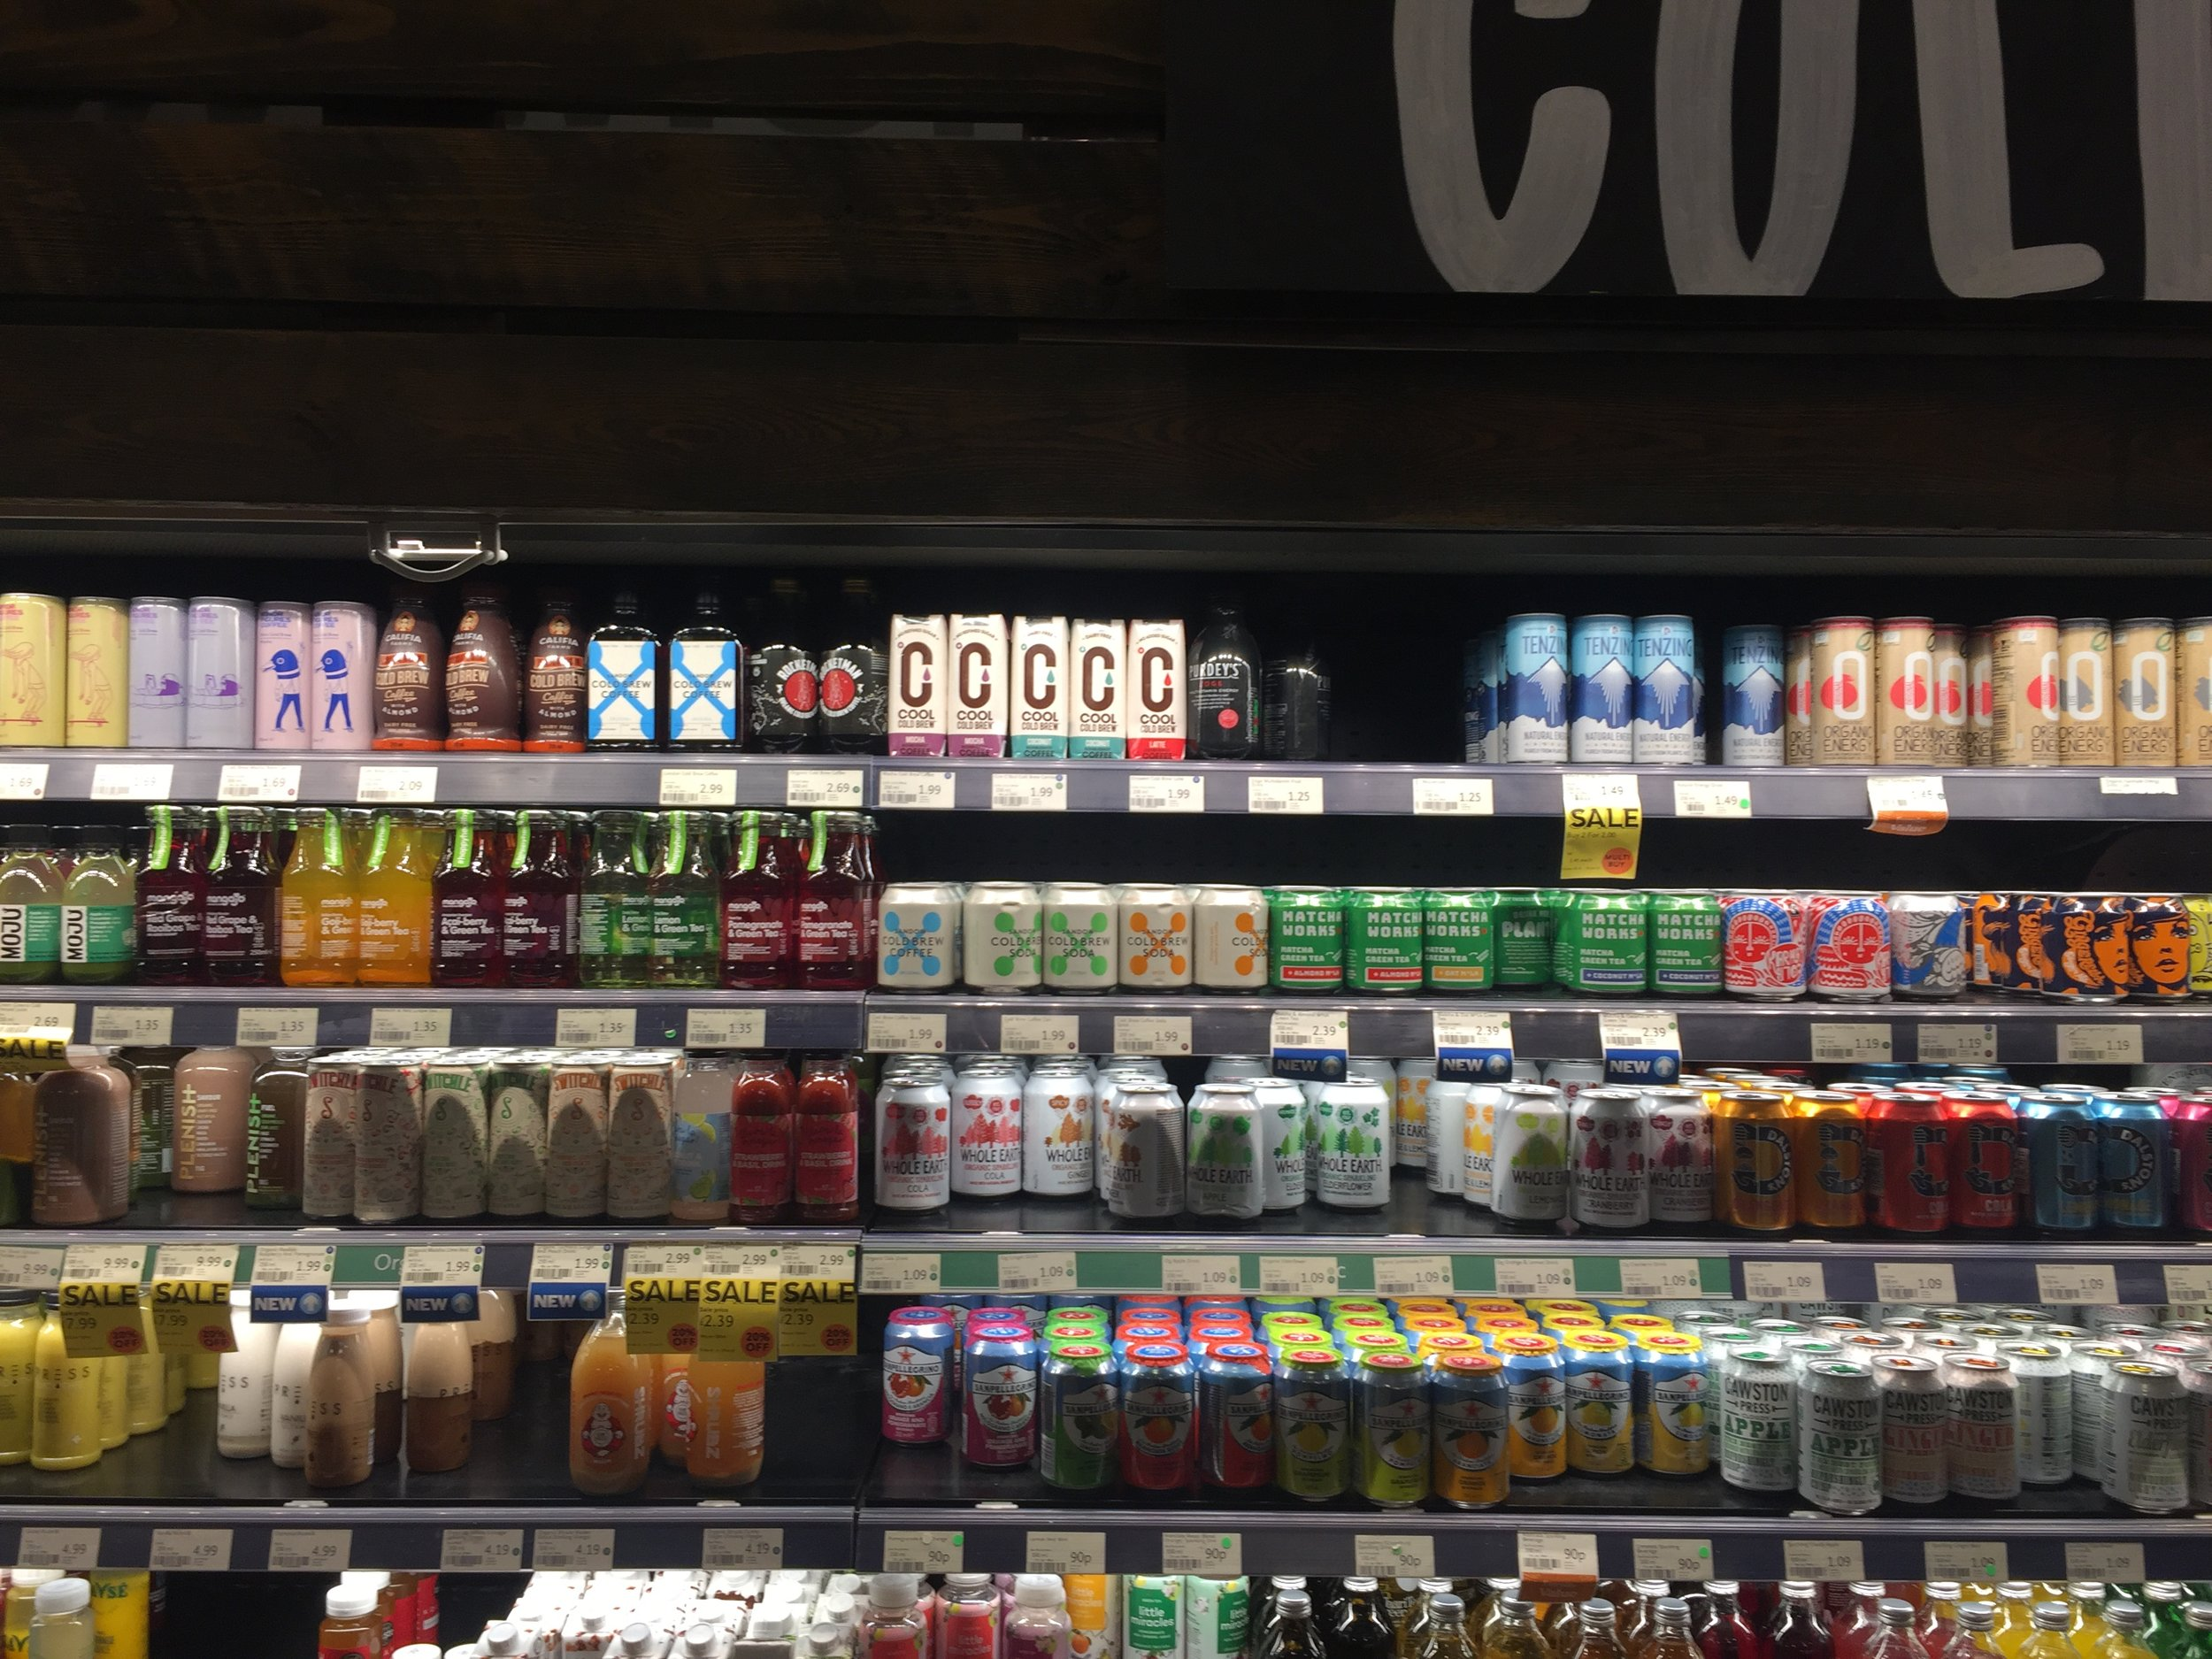 Cool Cold Brew in Whole Foods Market